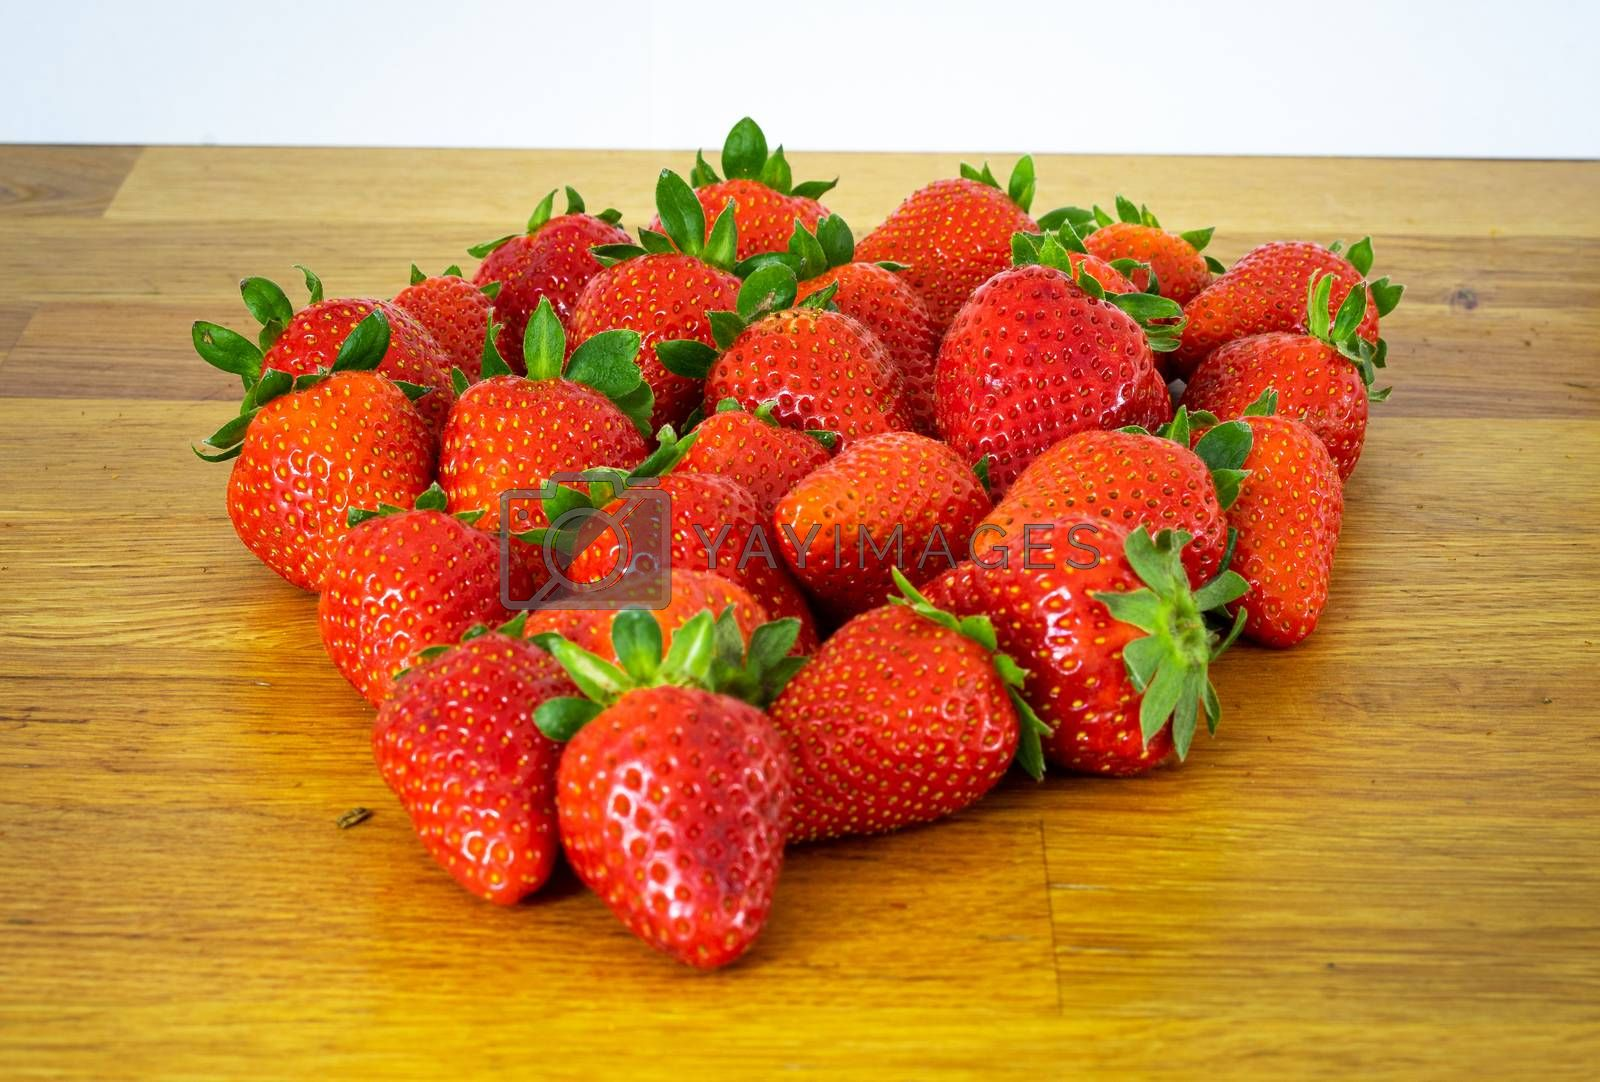 Fresh red strawberries shaped into a heart on a woody background in the kitchen